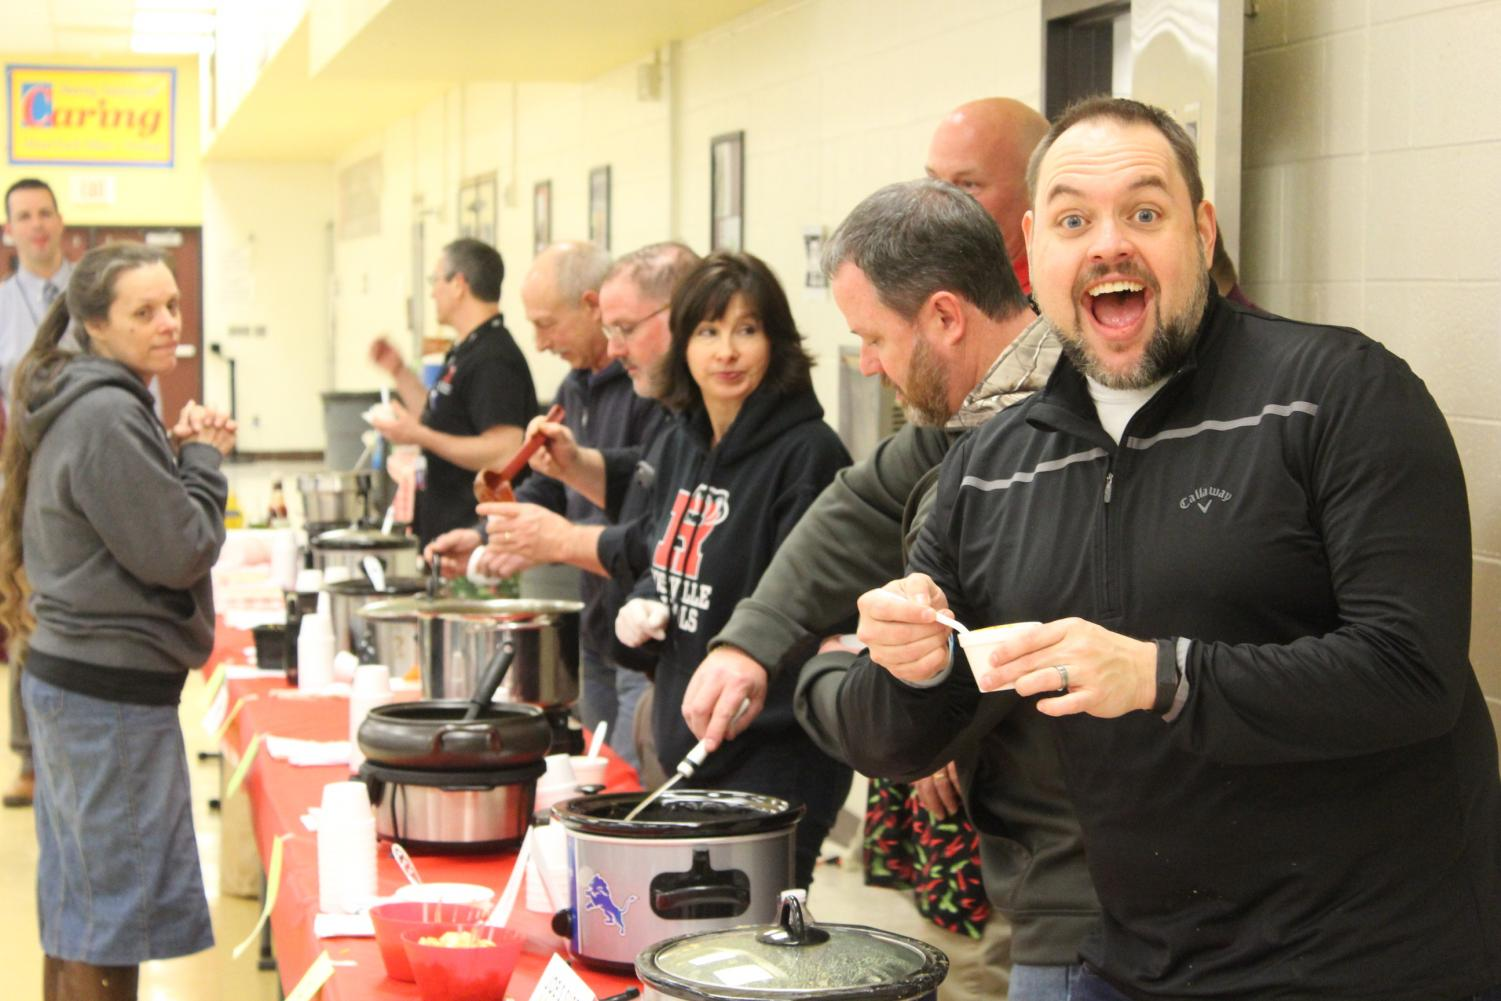 Participants cook and serve their chilis.